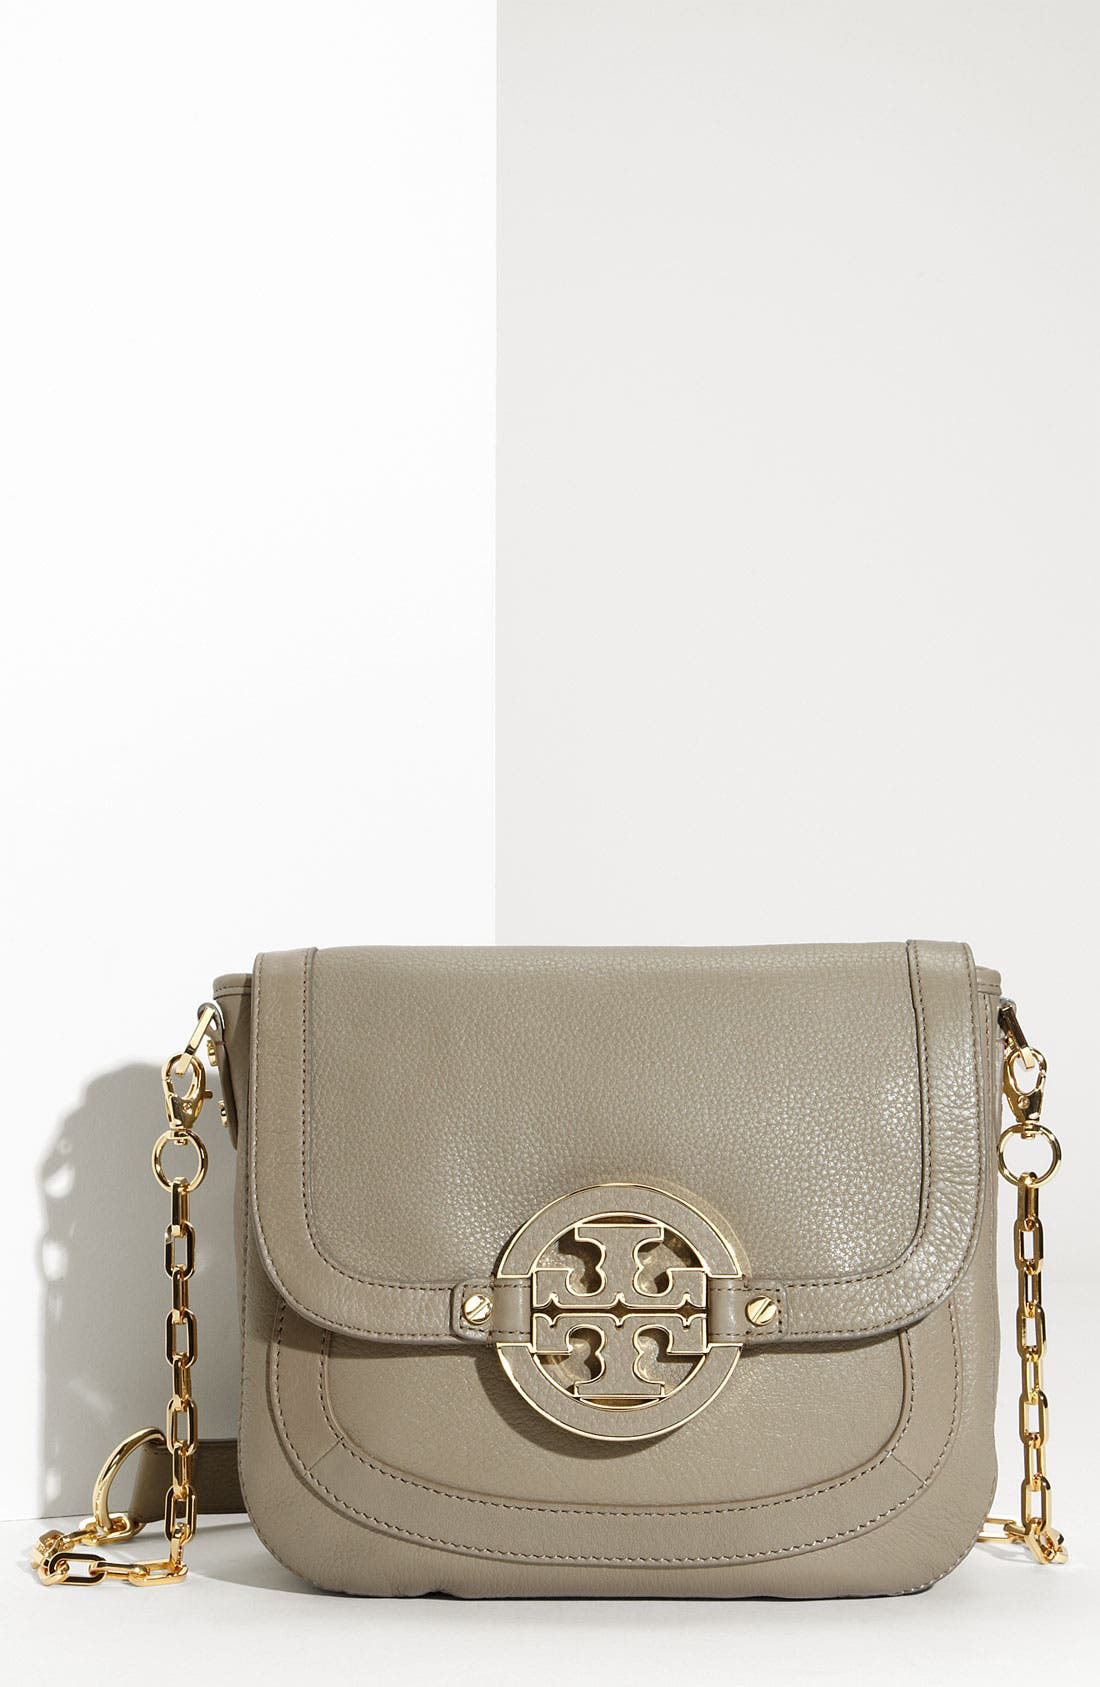 Main Image - Tory Burch 'Amanda' Messenger Bag